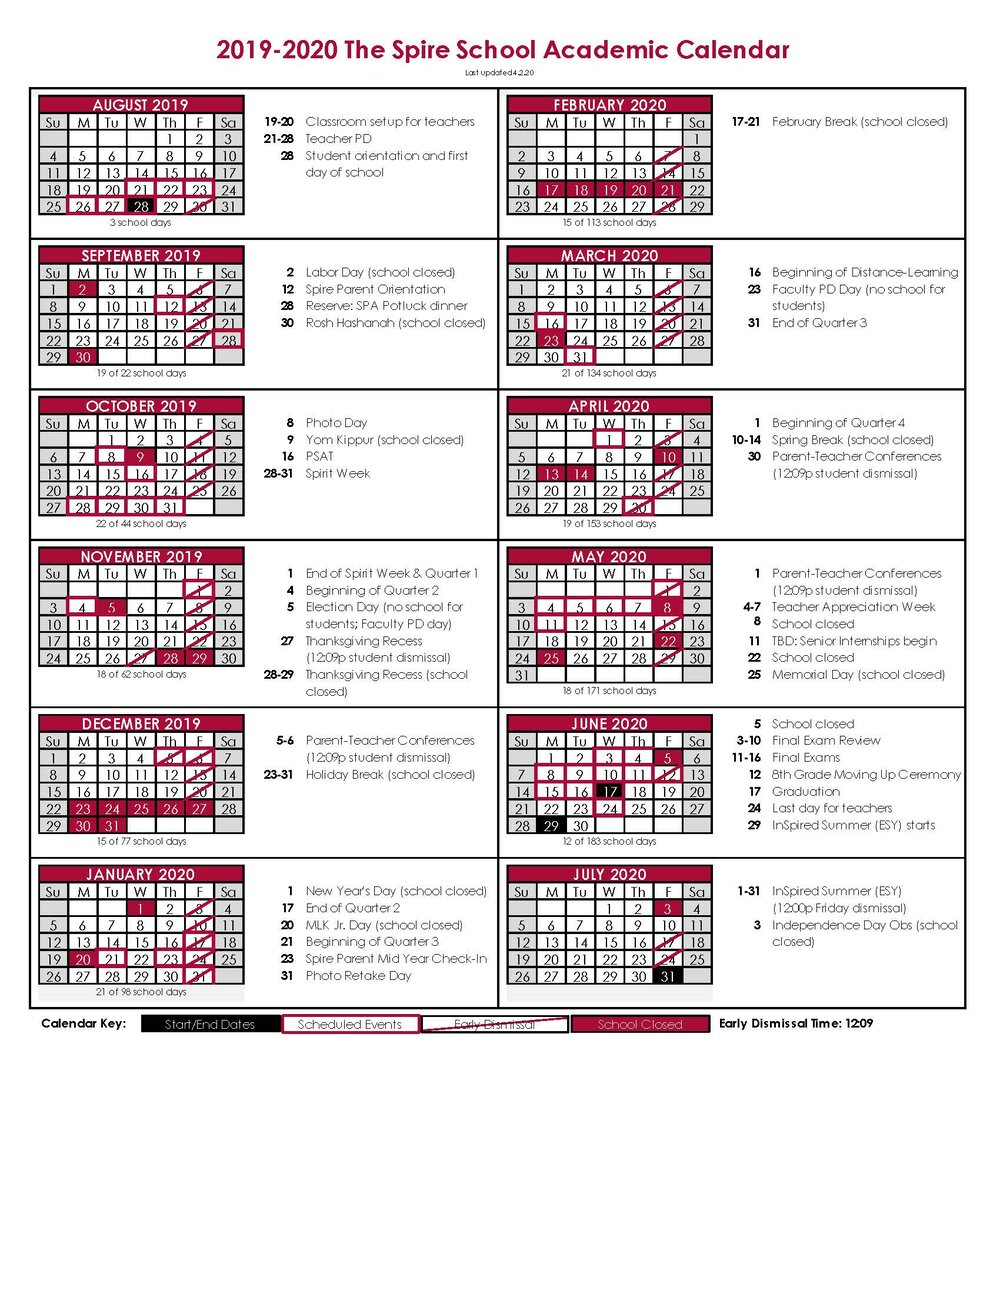 Academic Calendar — The Spire School For Queensboro Community College Calendar